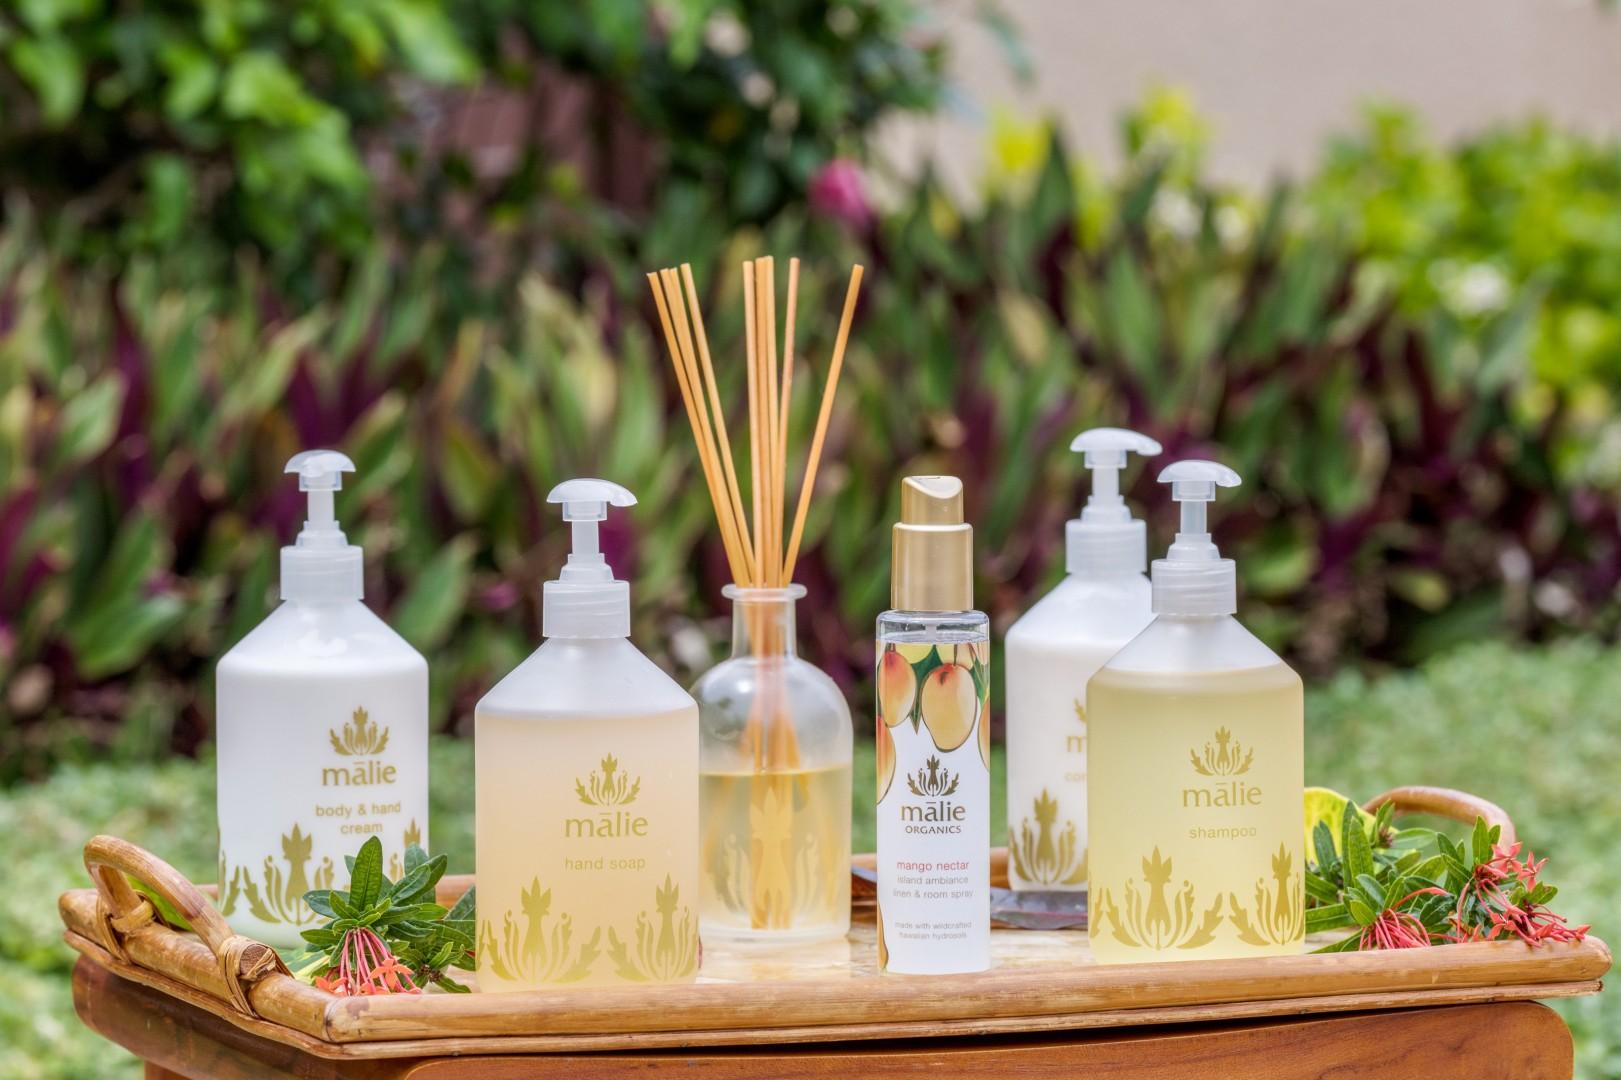 All Natural Malie Amenities Add Even More Heavenly Scents to Your Stay!